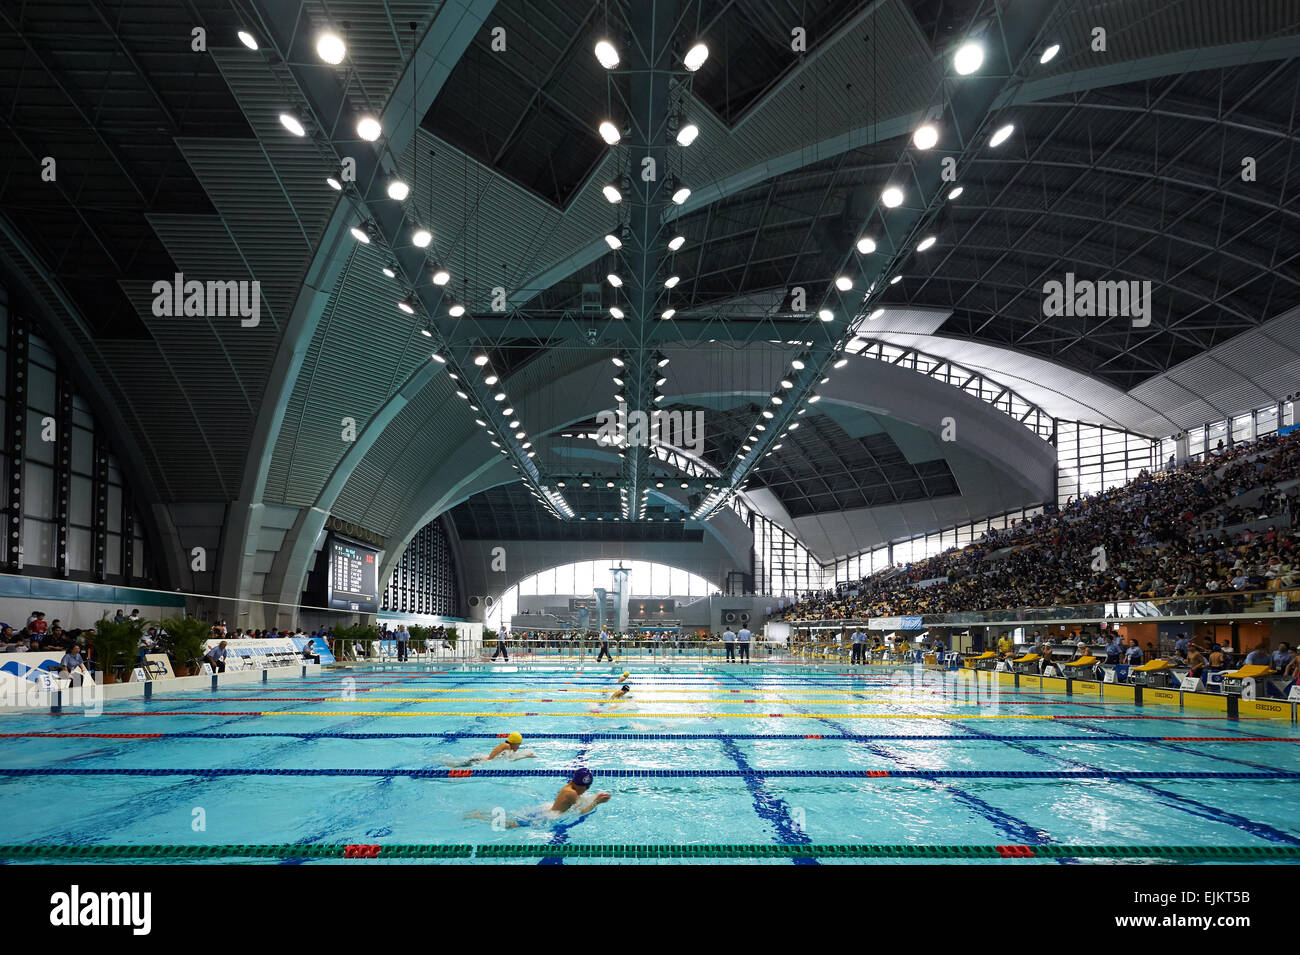 tatsumi international swimming pool tokyo japan 28th mar 2015 general view march 28 2015 swimming the 37th joc junior olympic cup at tatsumi